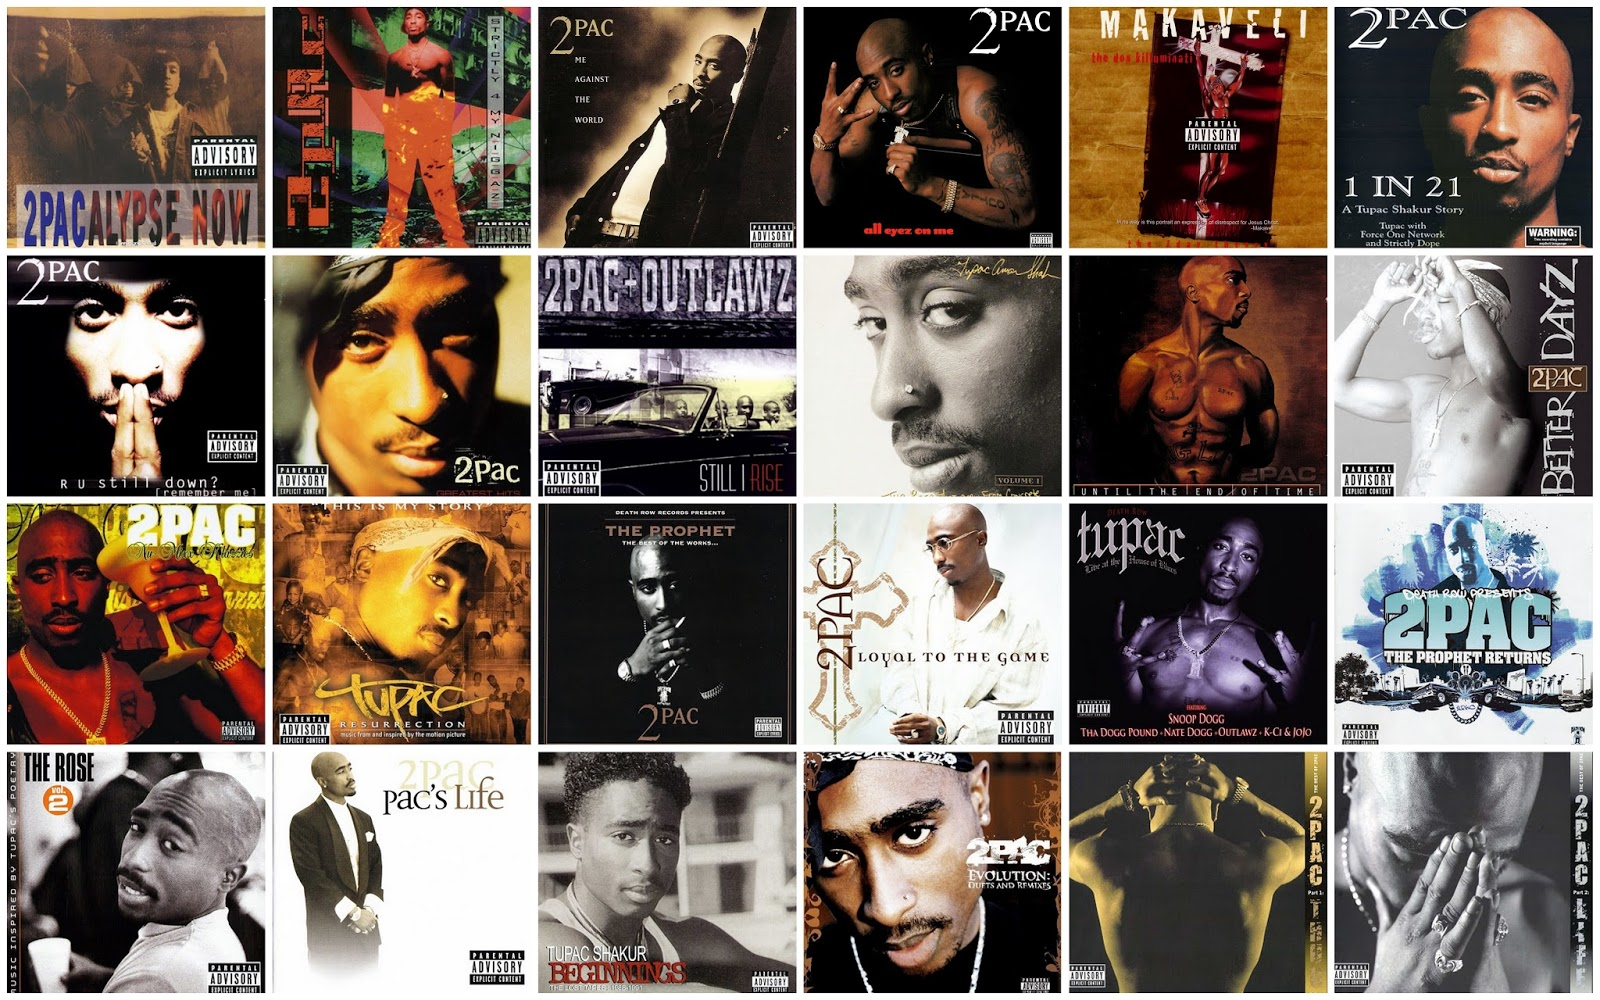 2pac Greatest Hits Download - reptakeoff's blog